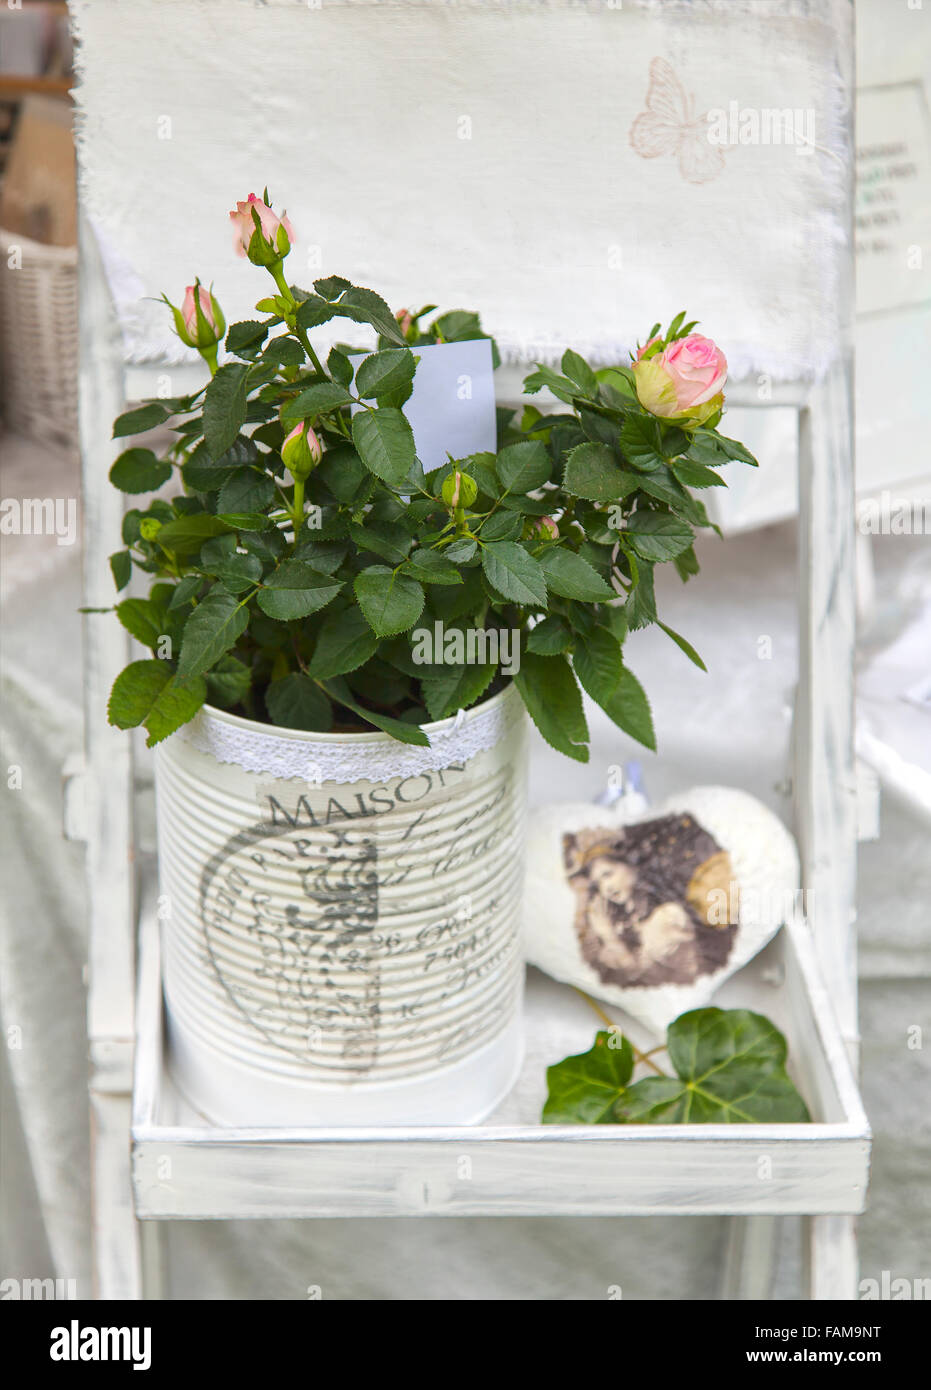 Image of romantic shabby chic flower arrangement. - Stock Image